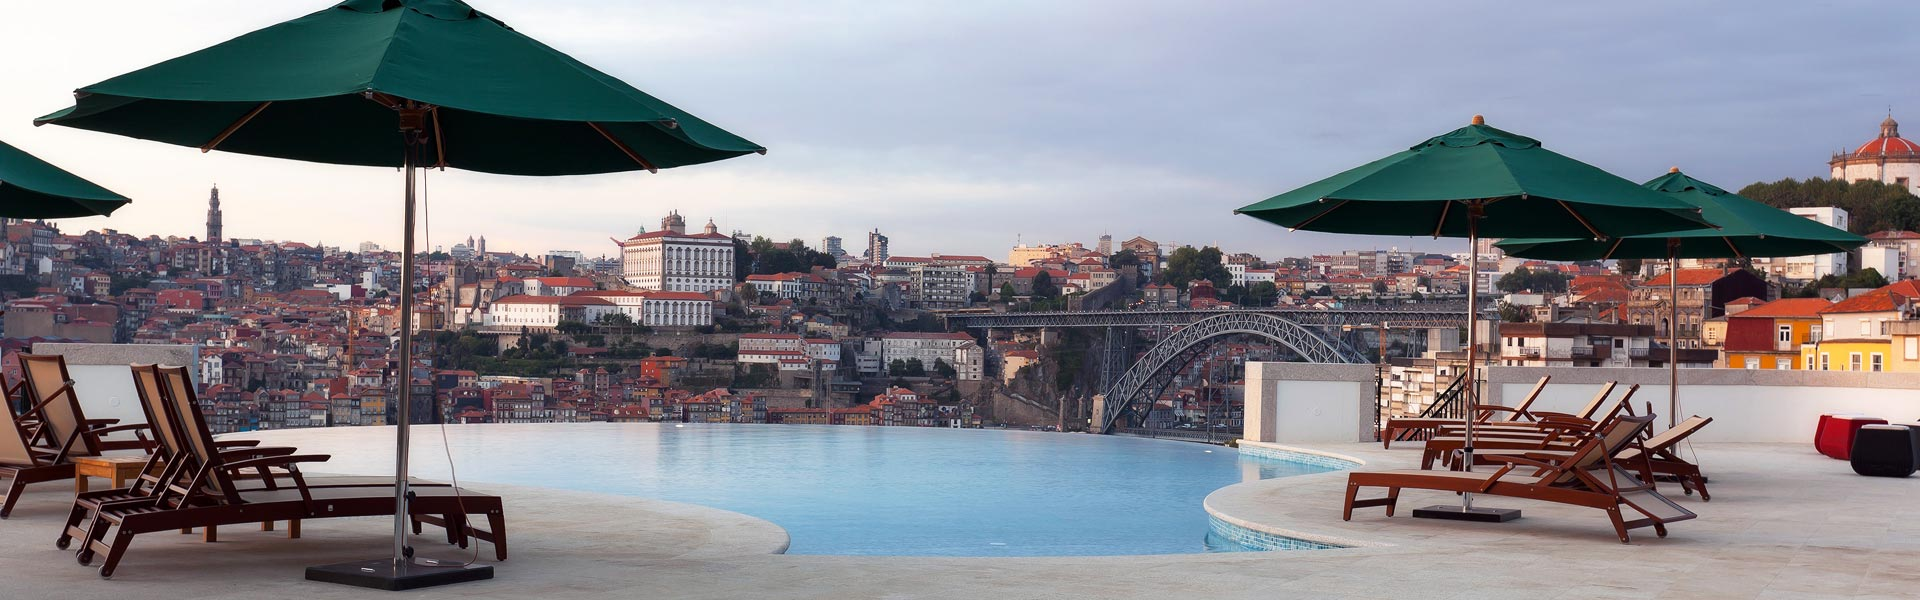 Benefits And Prices Portugal Tour Pousadas Of Touring Unlimited Estrelas Yeatmanpool